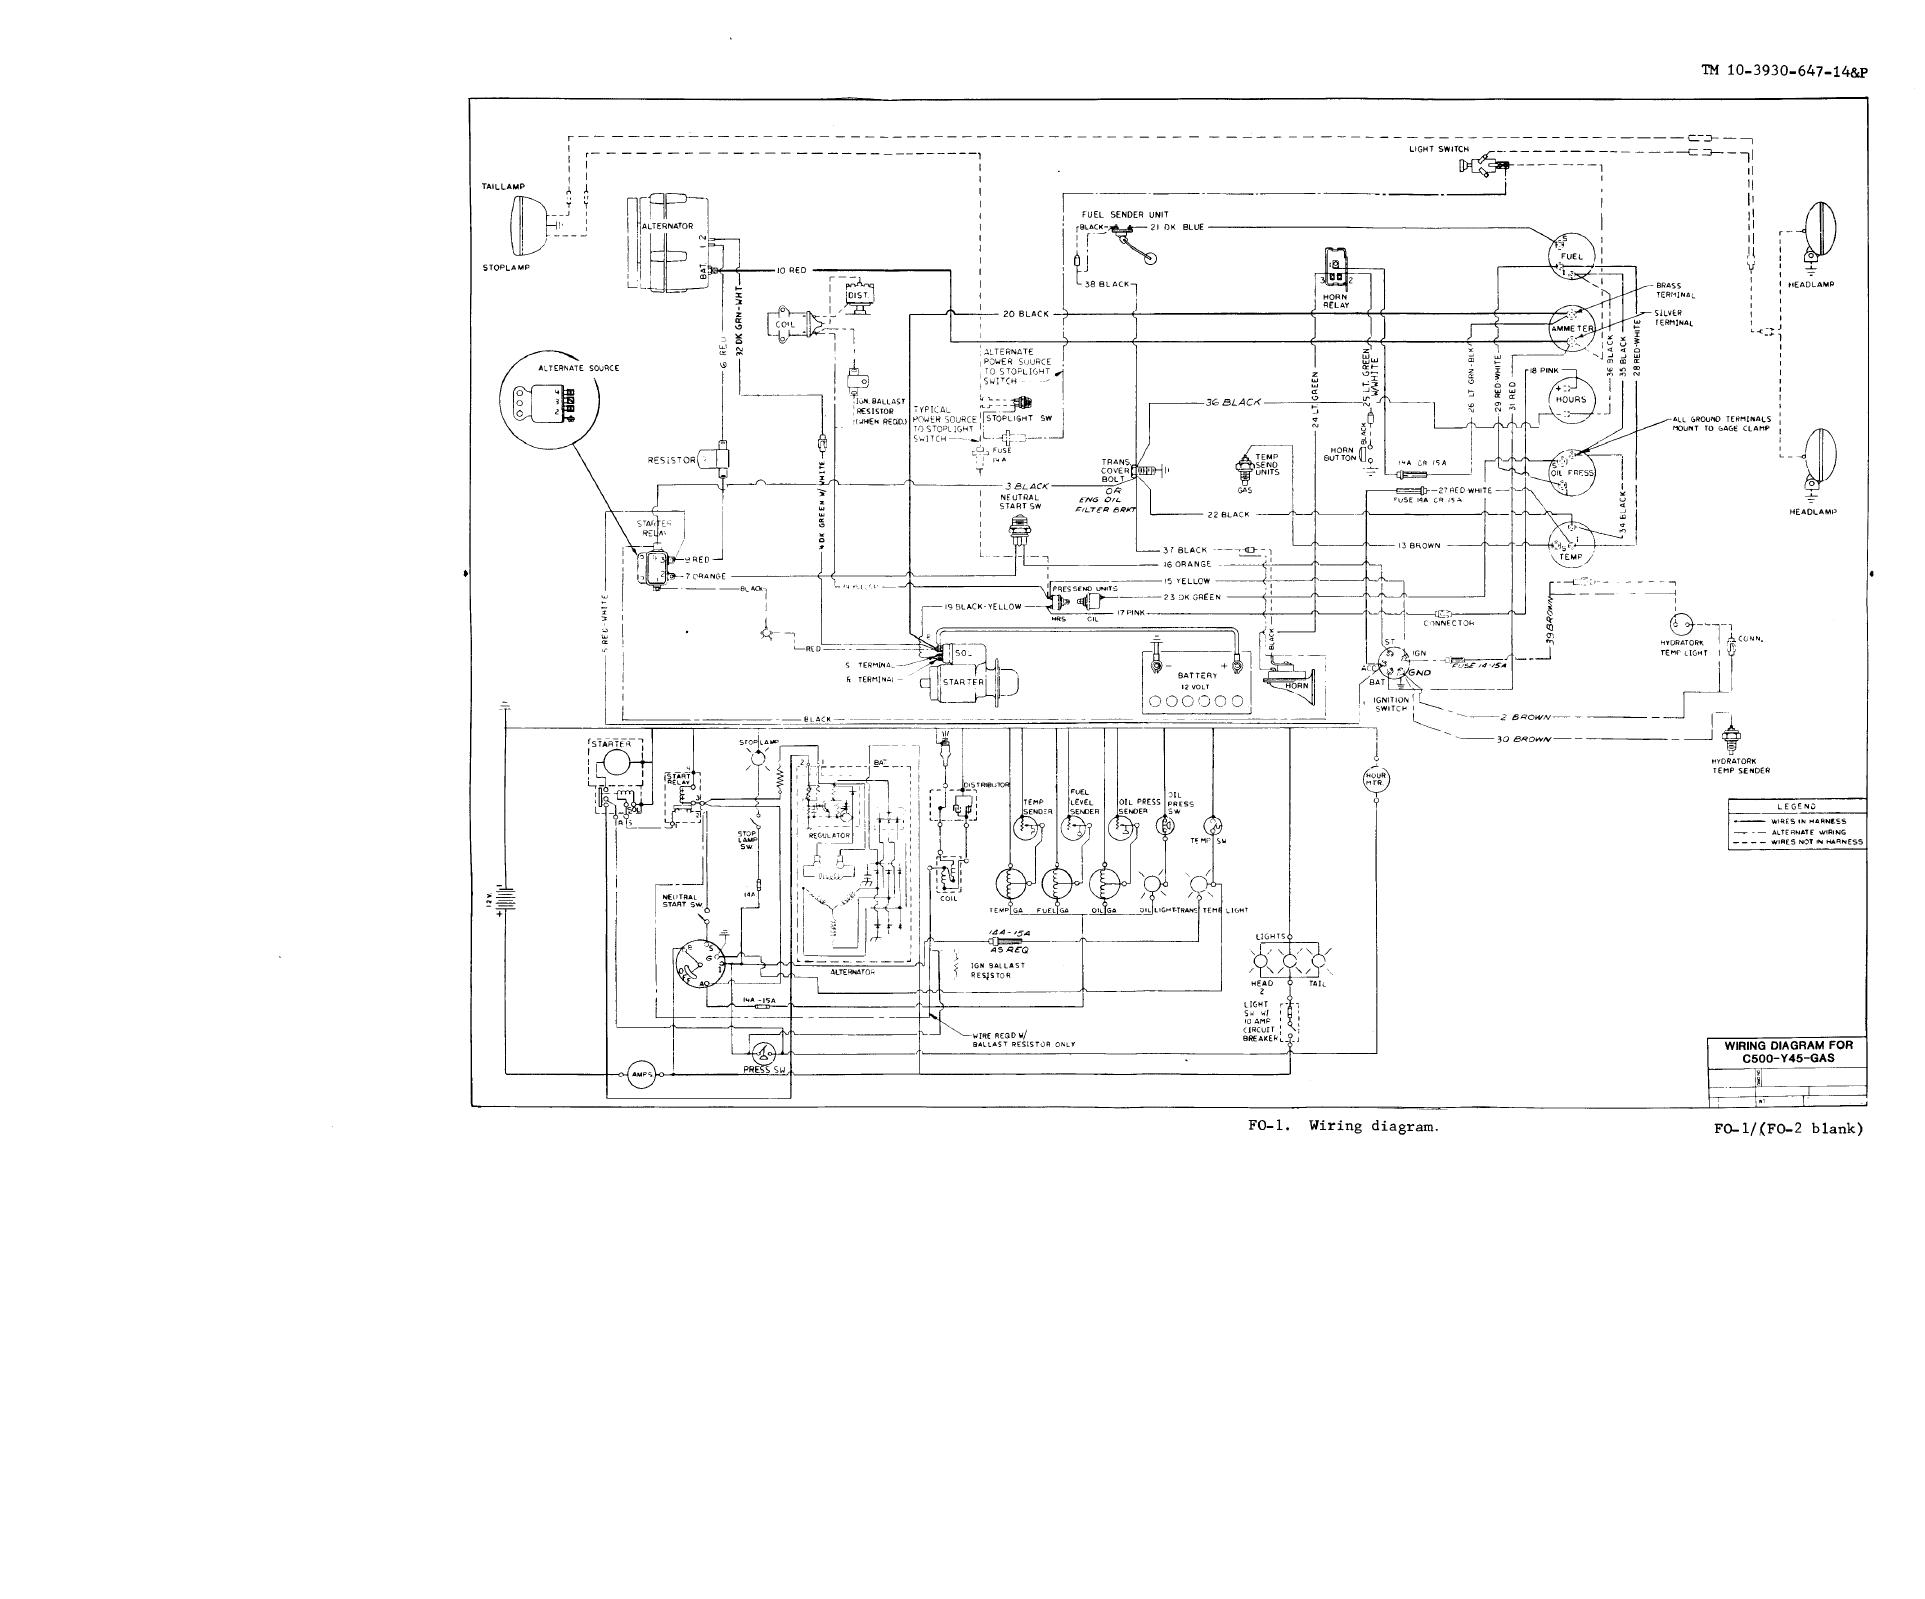 96 altima wiring diagram 96 free engine image for user With clark wiring diagram